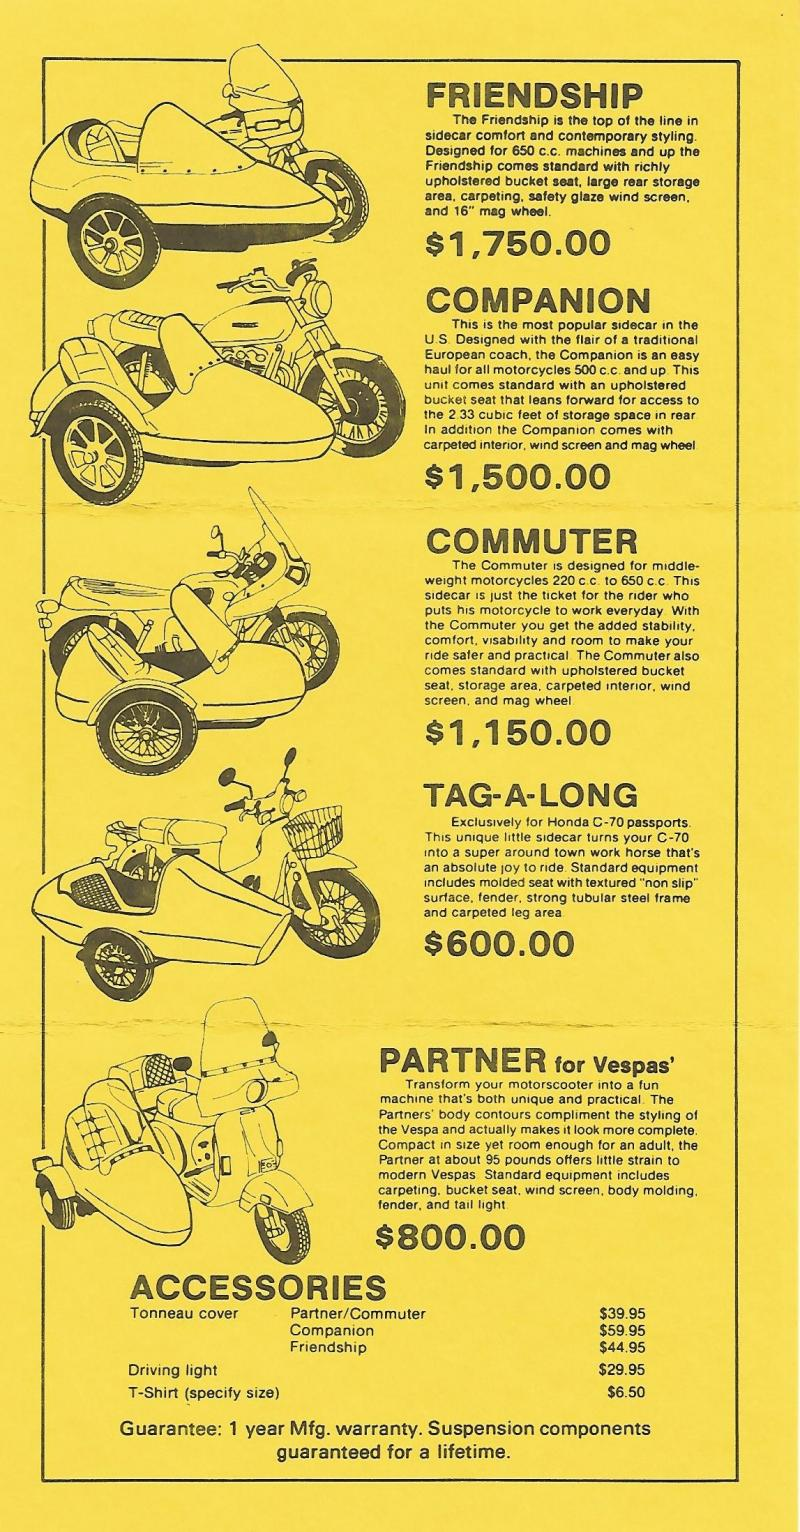 California Sidecar sales brochure late 1970s early 1980s